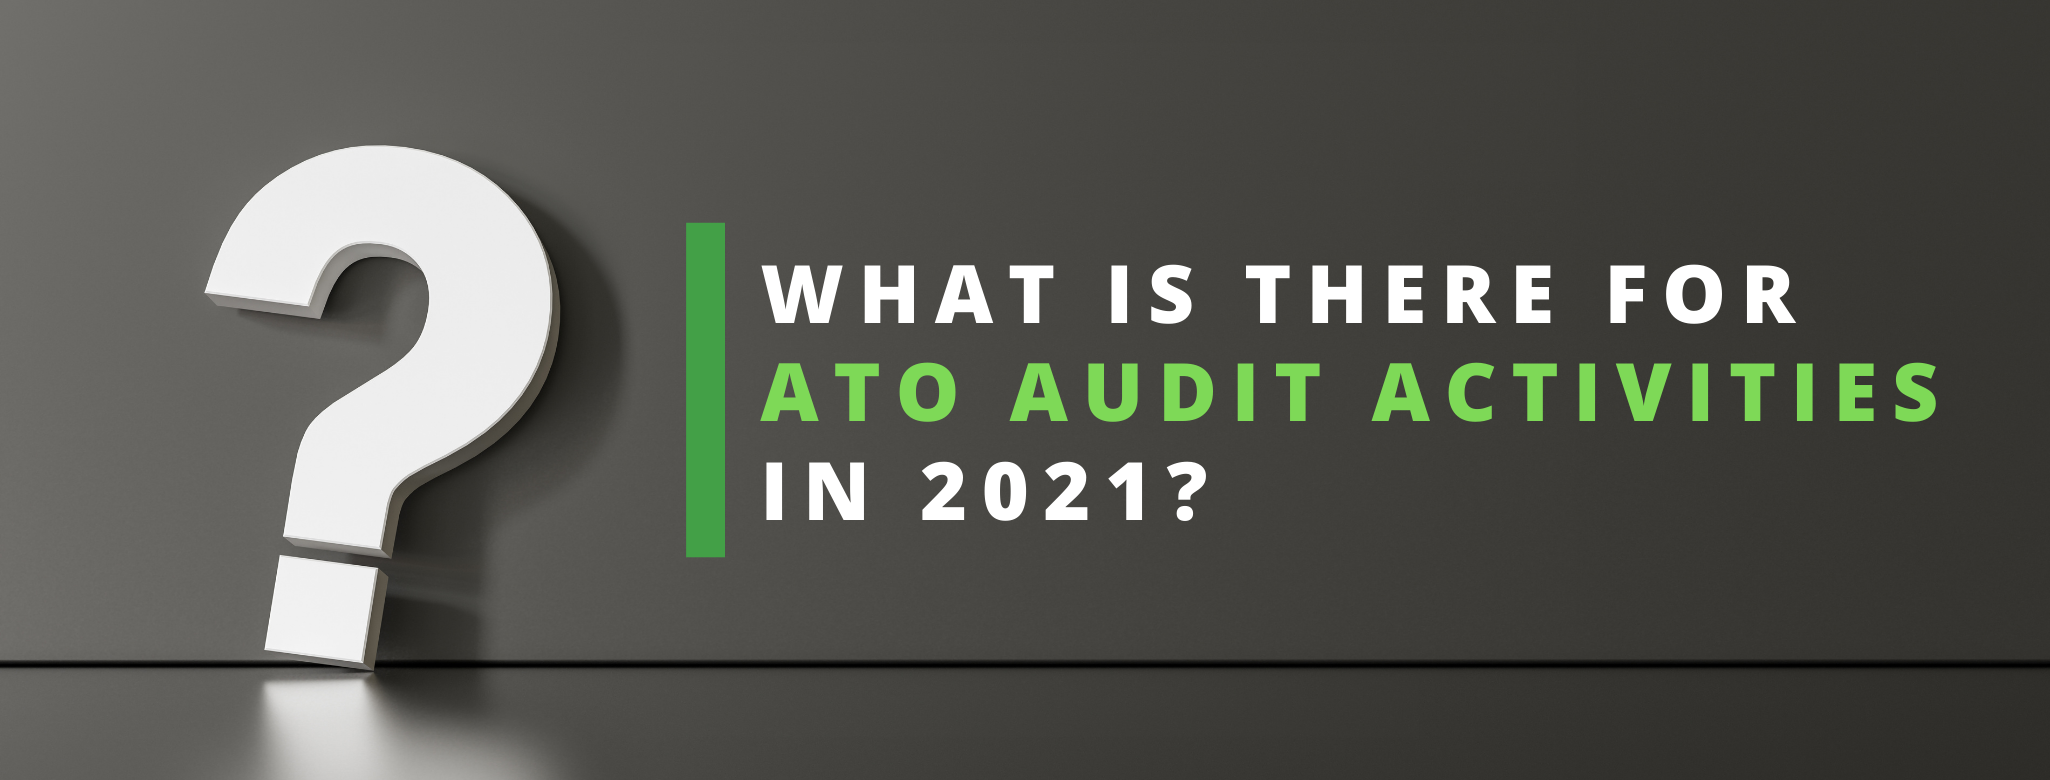 What is there for ATO audit activities in 2021?